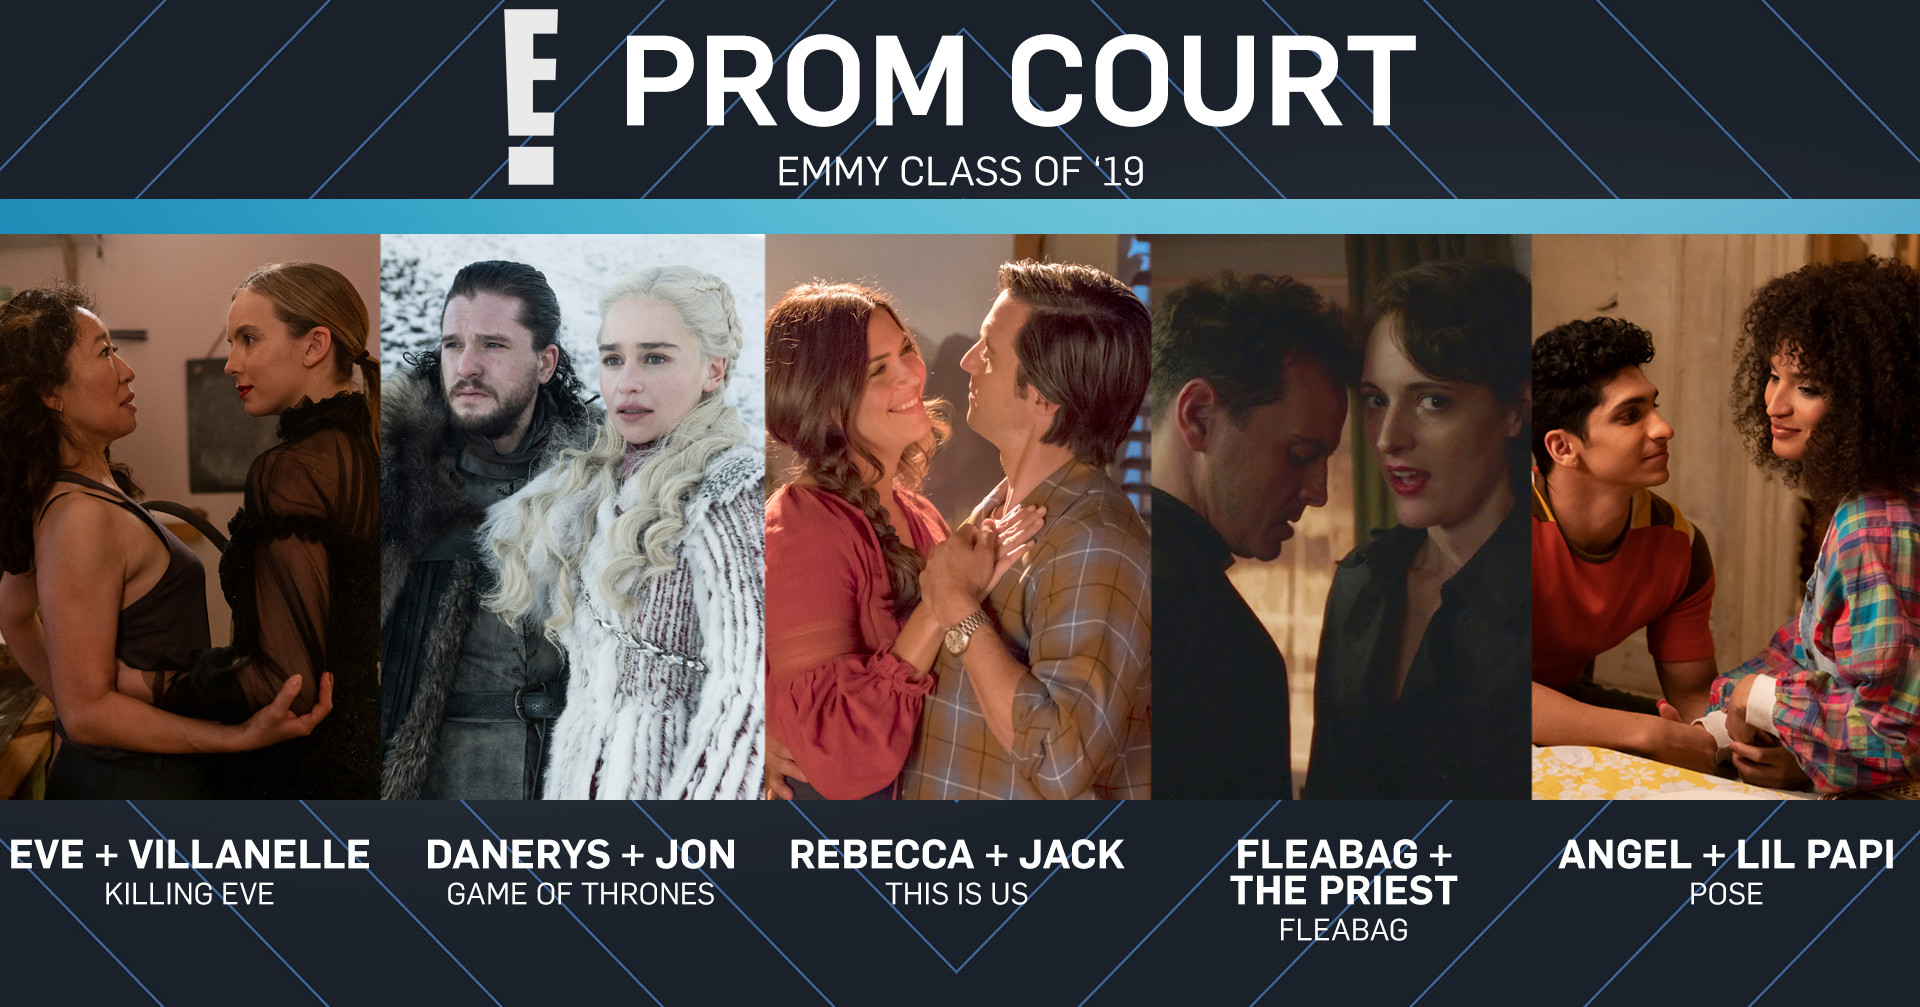 Emmy Class of 2019, Prom Court